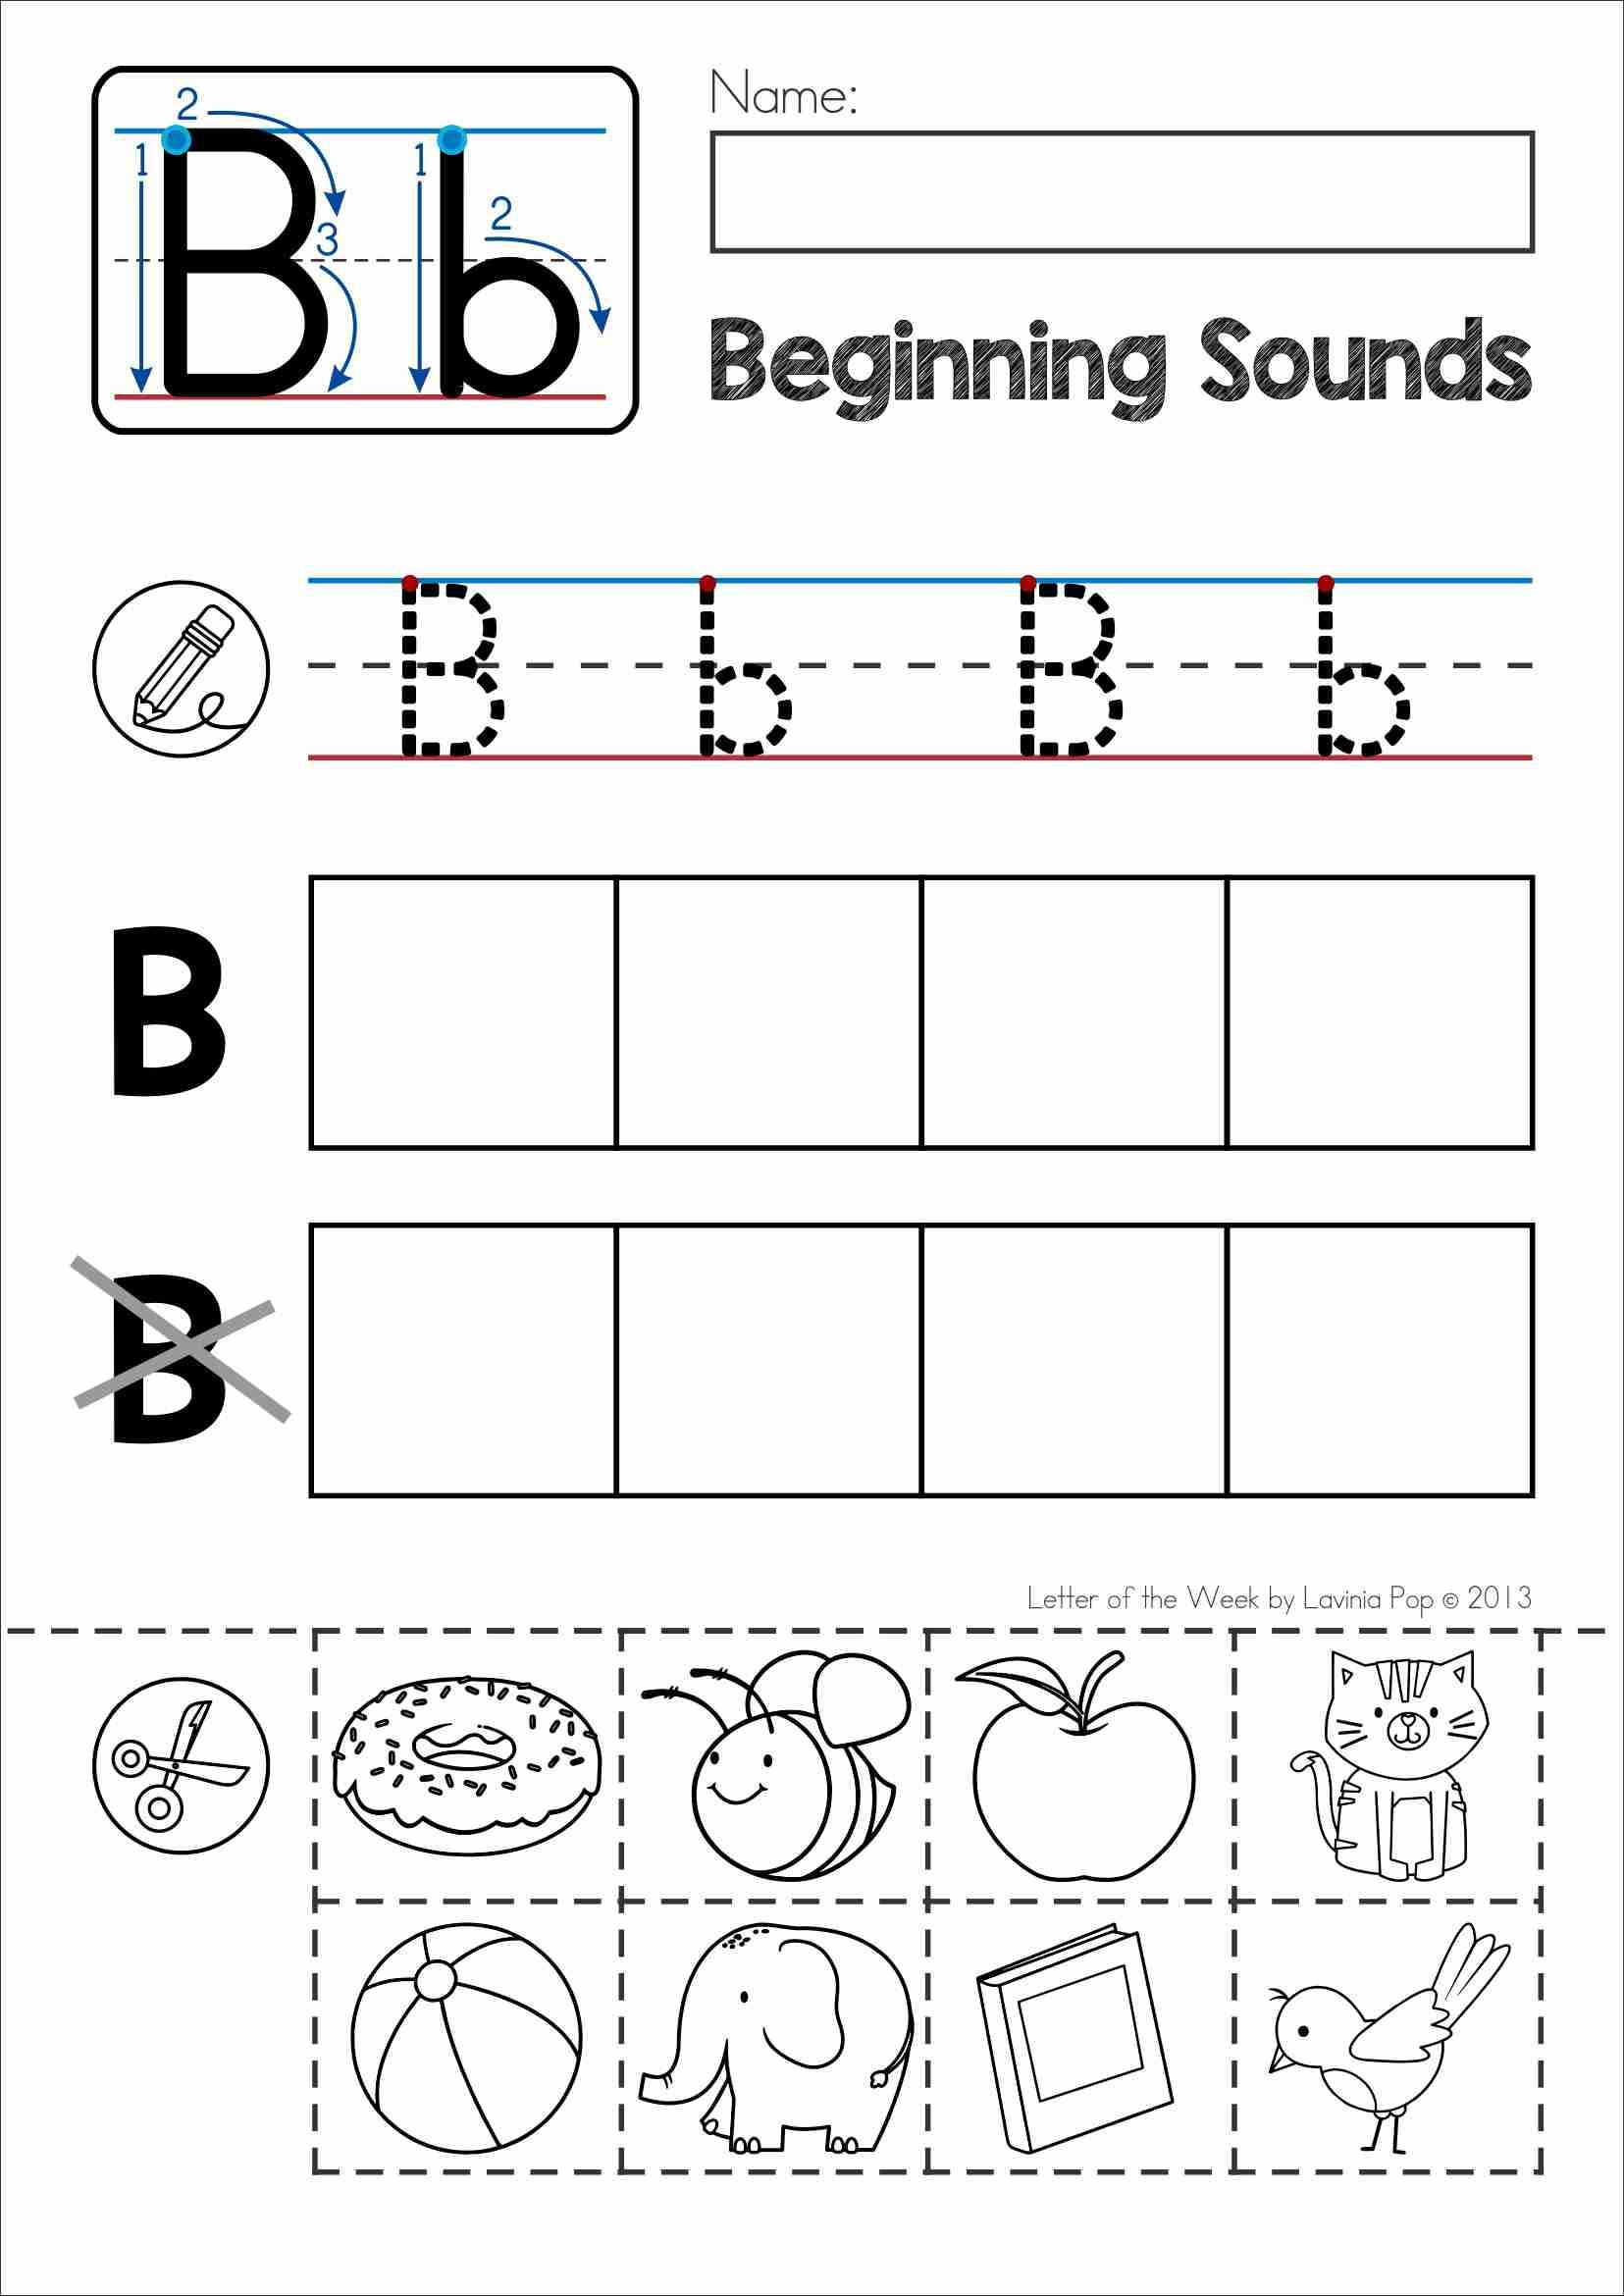 Alphabet Sound Worksheets : Free phonics letter of the week b beginning sounds cut